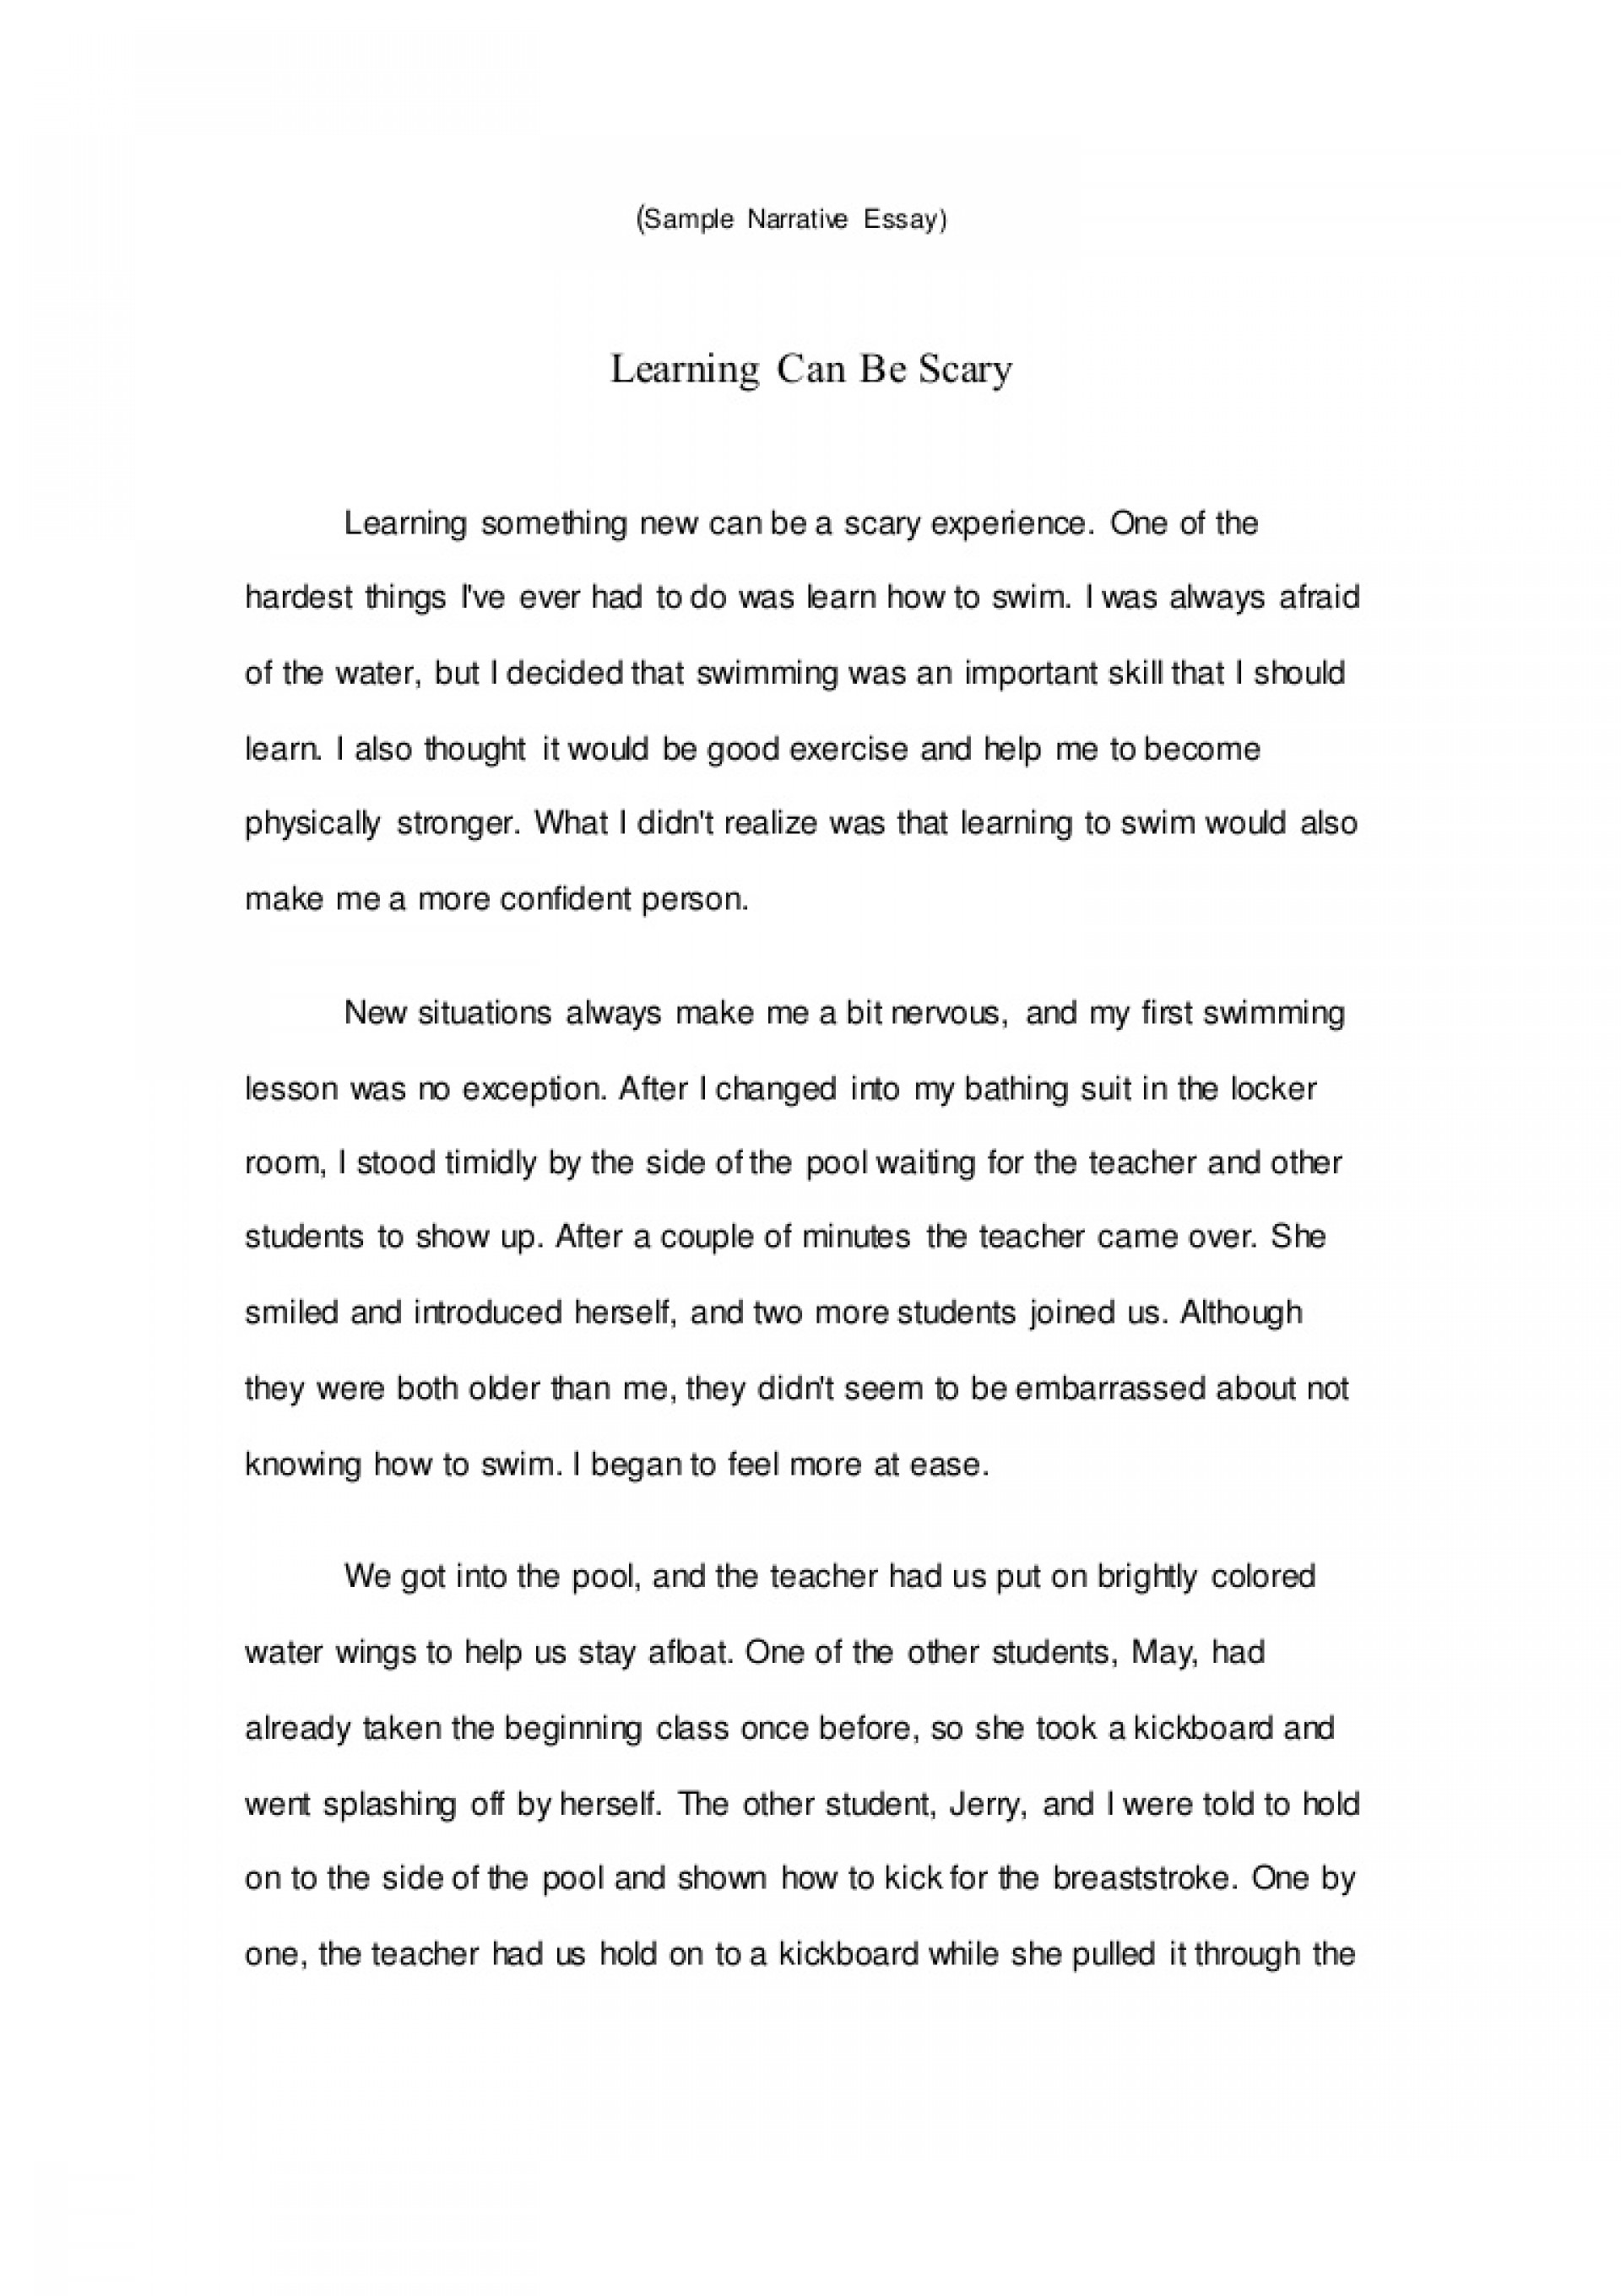 023 Essay Example Samplenarrativeessay Lva1 App6891 Thumbnail On Stupendous Fear Short Of Failure College Public Speaking Afraid Snakes 1920